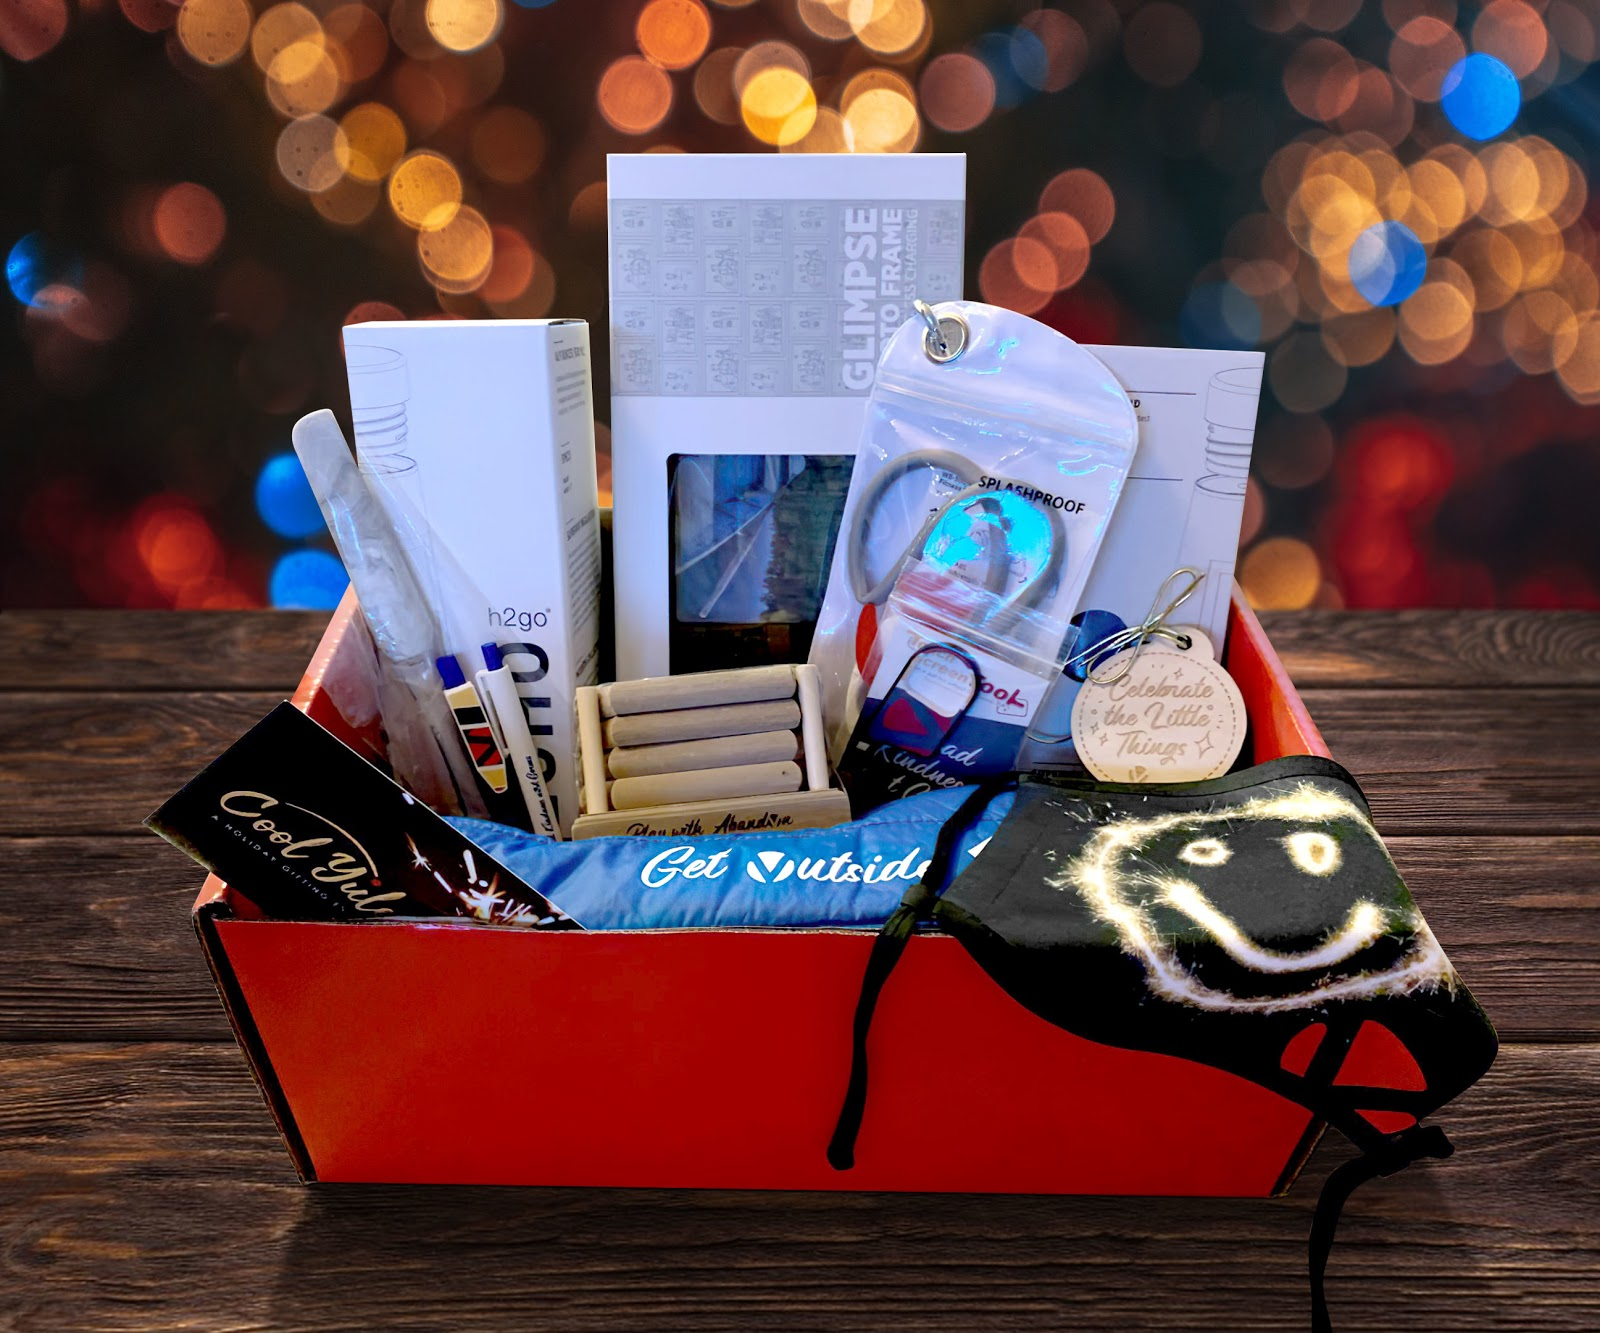 A photo of a event gift hamper with stationery, event aids, and an agenda